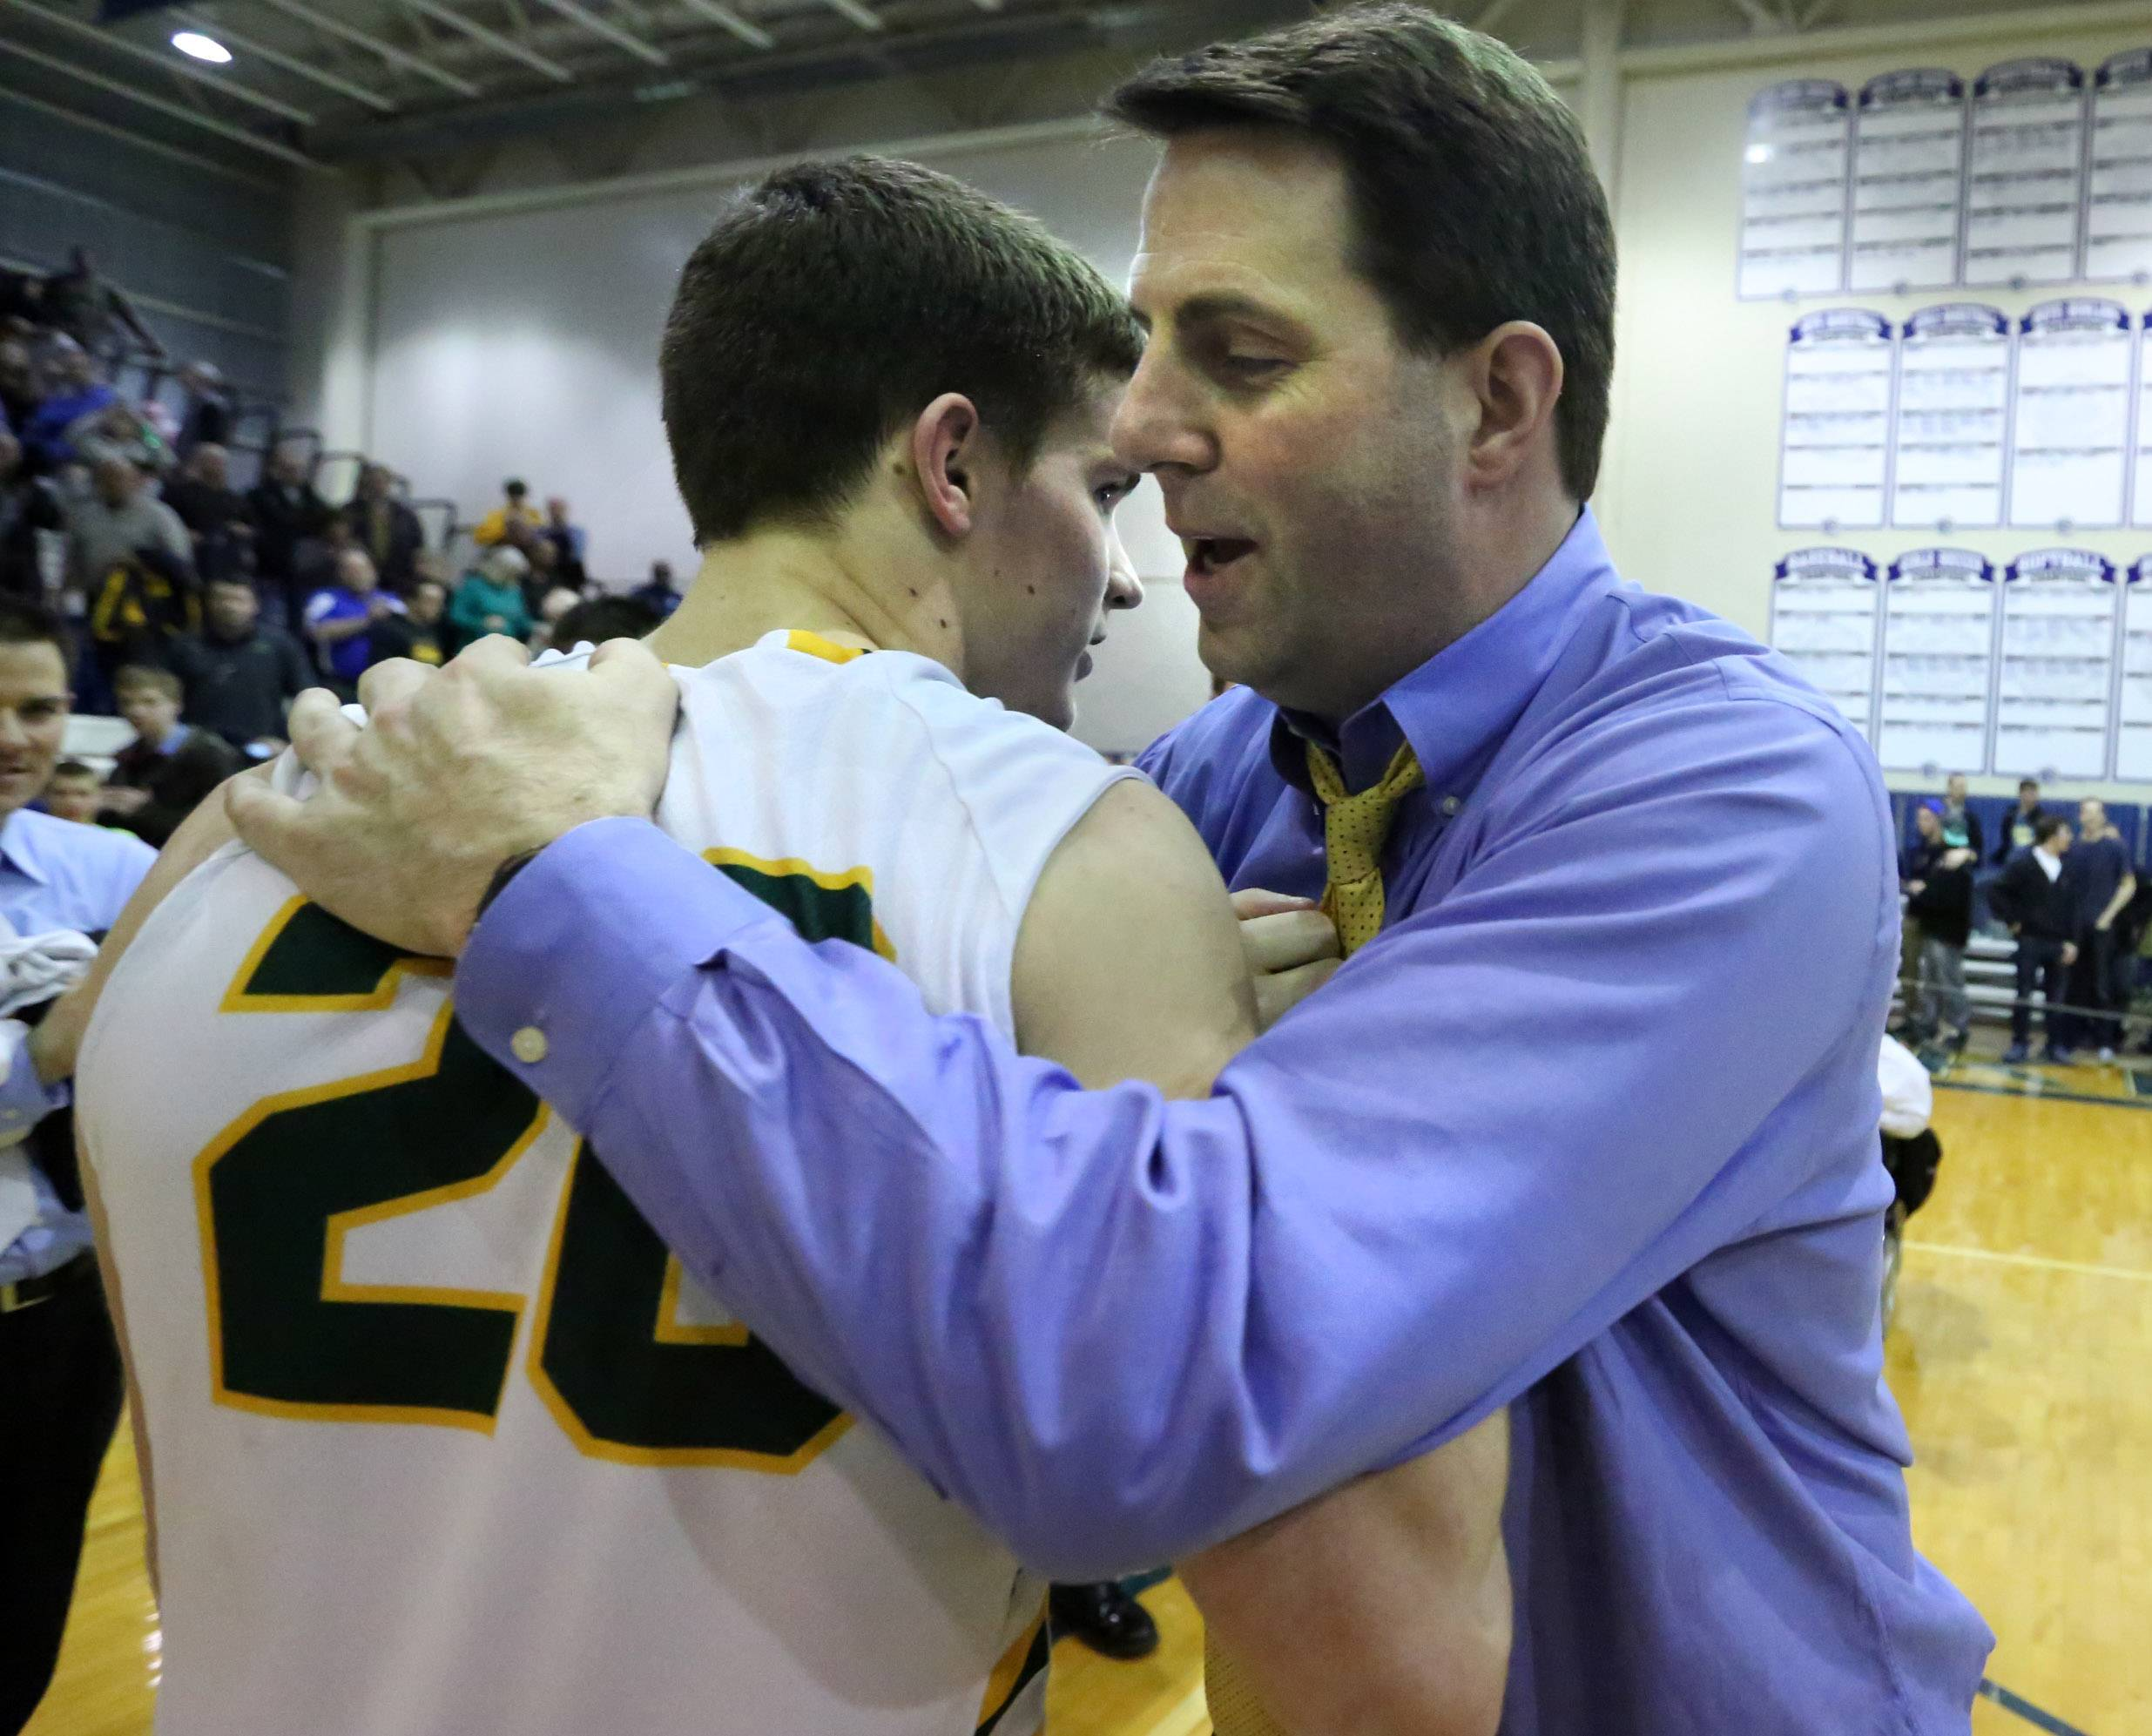 Stevenson coach Pat Ambrose hugs Matt Morrissey at Lake Zurich after Stevenson won the Class 4A sectional final on Friday in Lake Zurich.